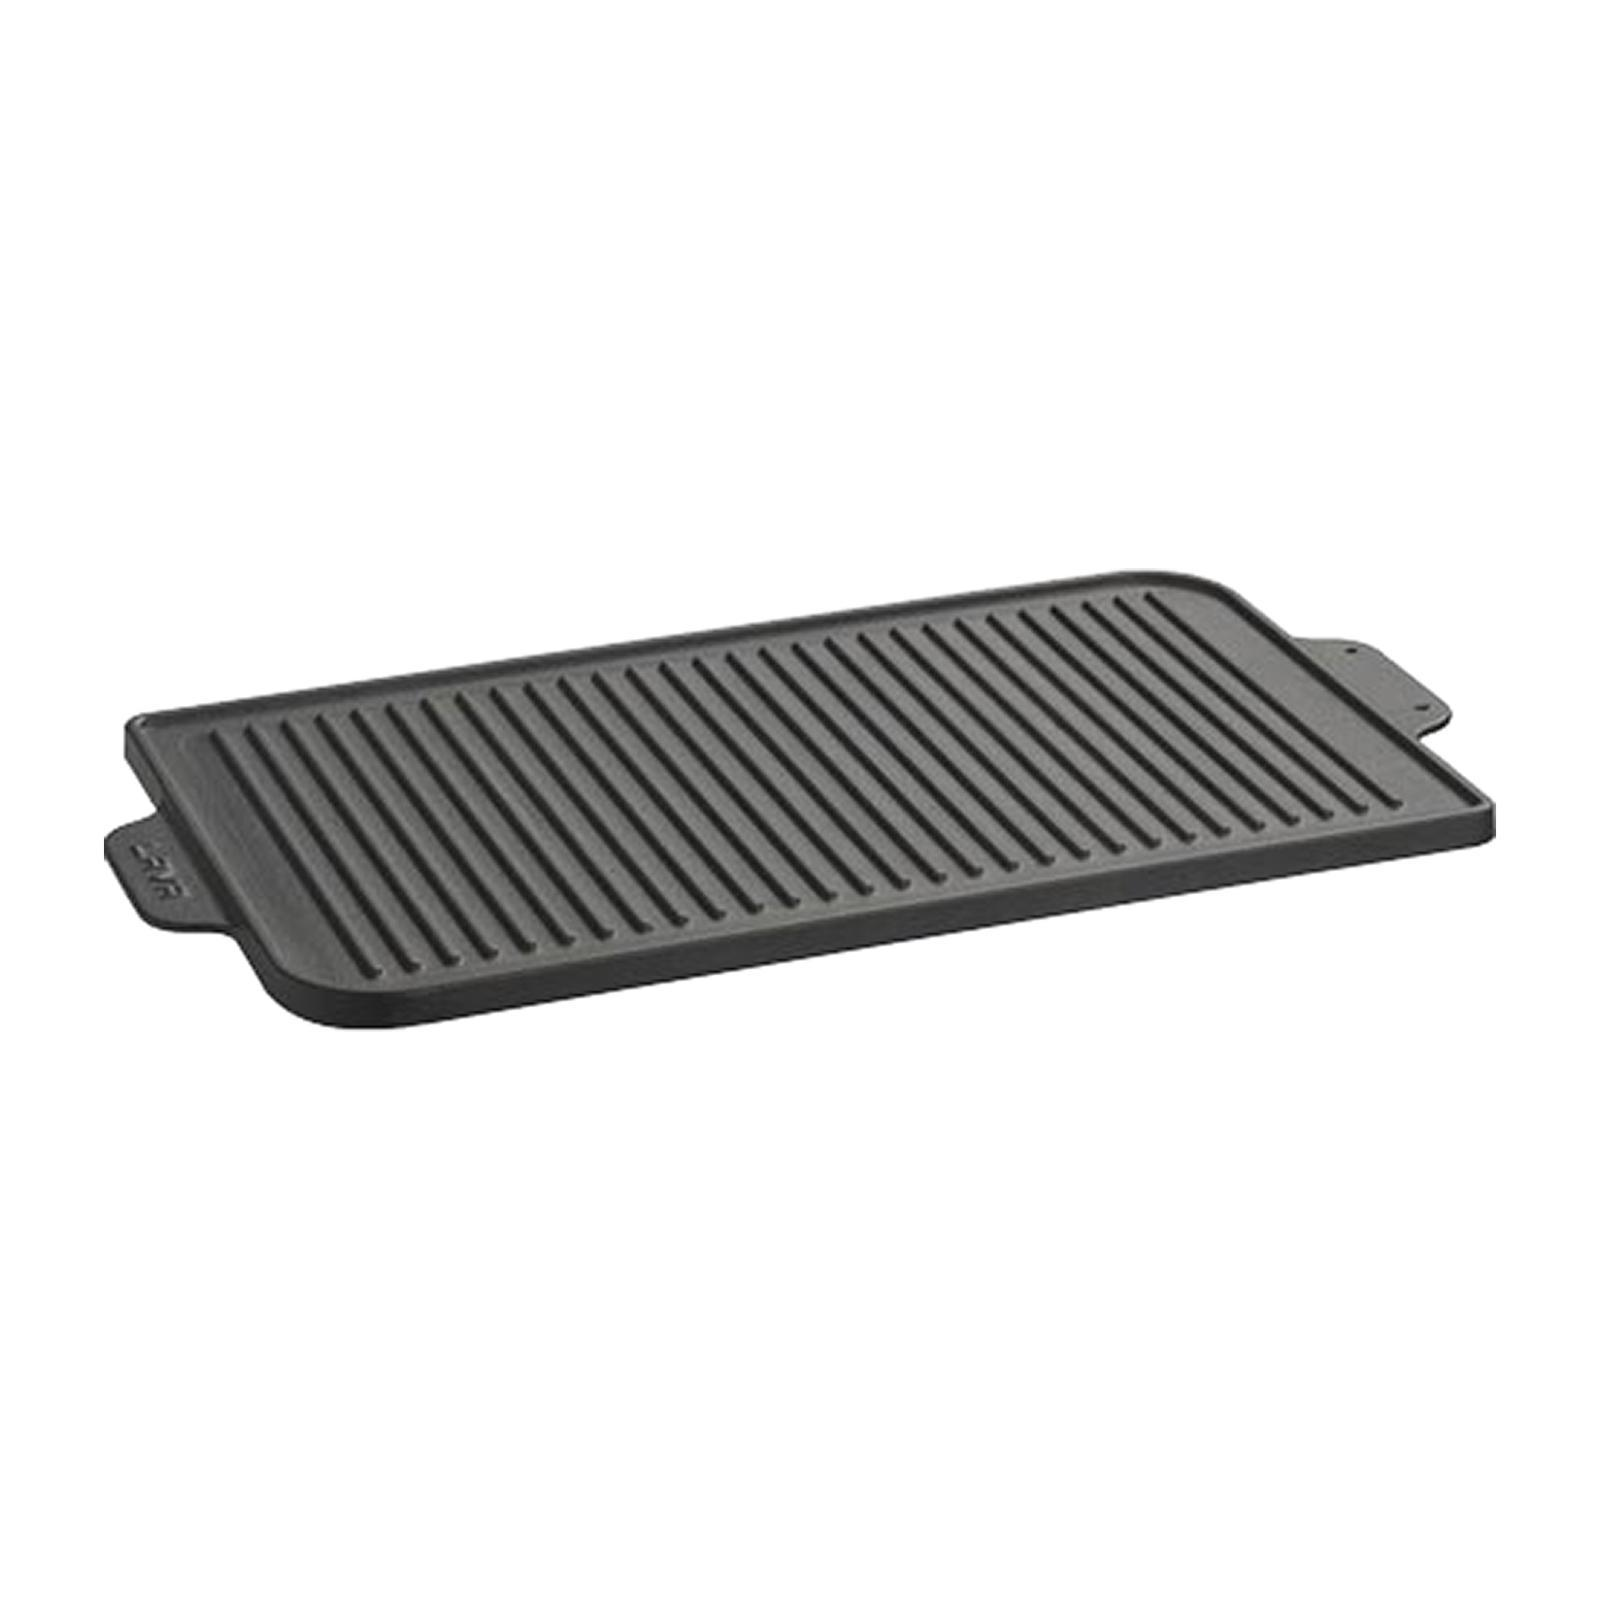 Lava Cast Iron Rectangle Reversible Griddle And Grill Plate 26X47 CM ECO - By ToTT